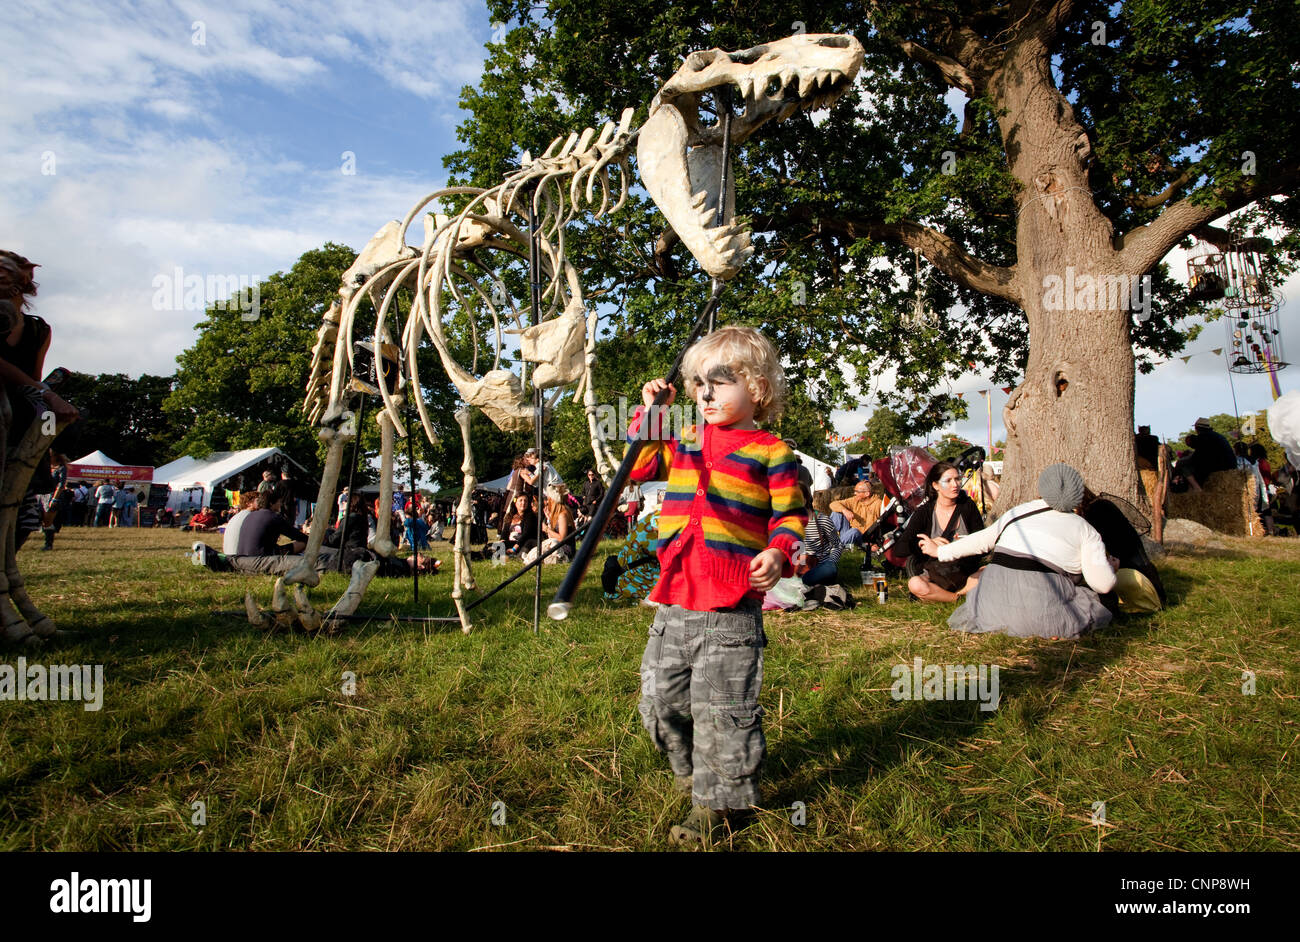 Child playing with a life size replica of a dinosaur skeleton at Playgroup Festival in Kent. Stock Photo